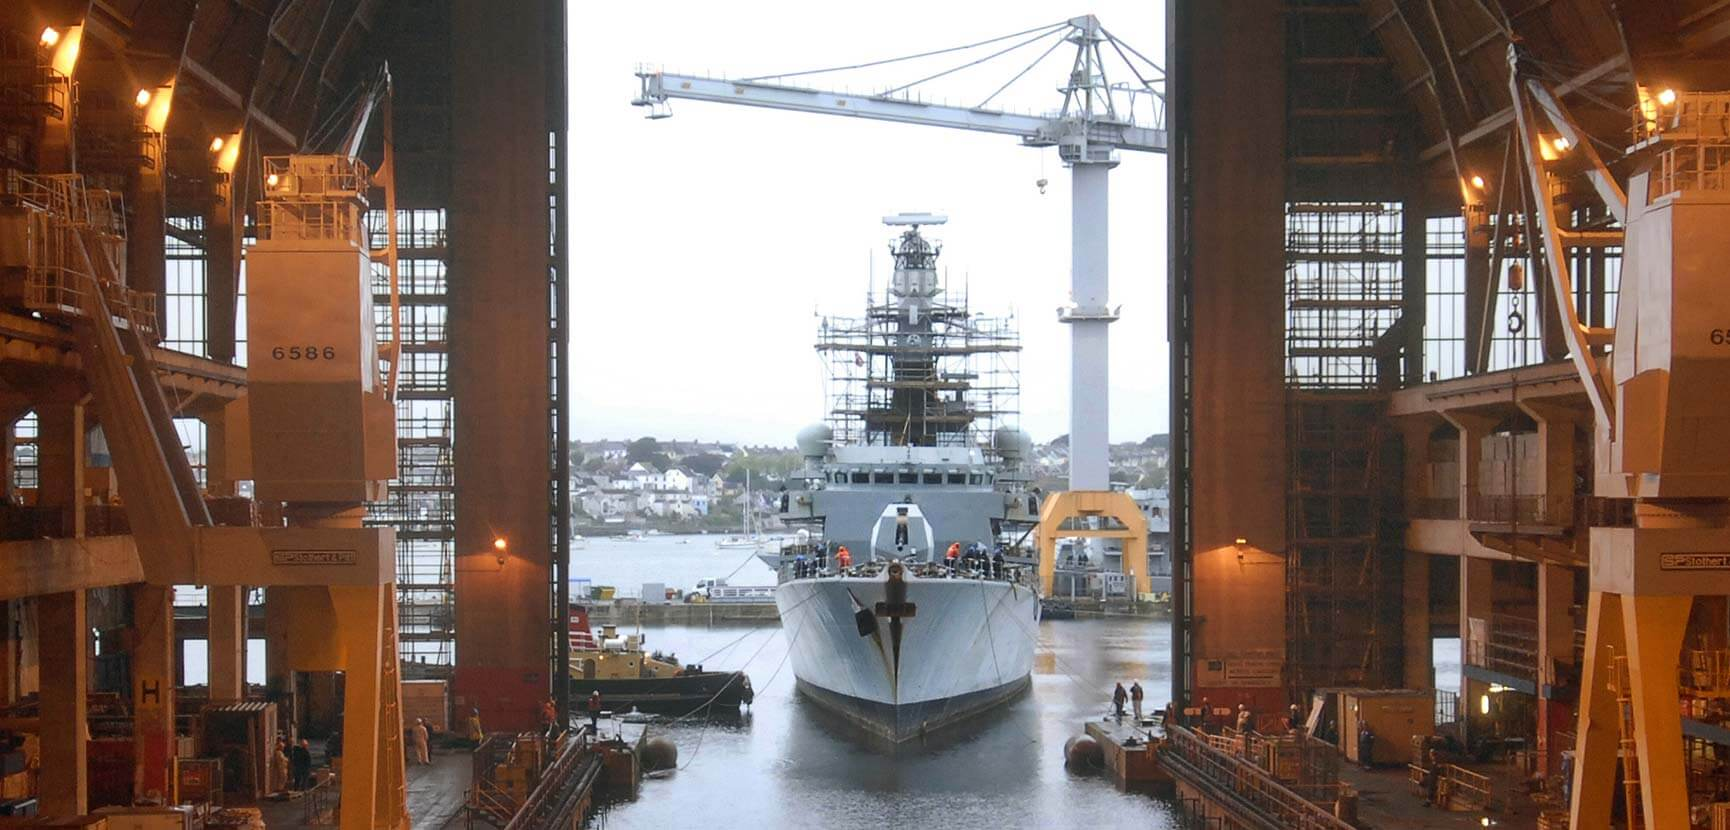 HMS Richmond enters Frigate Refit Complex